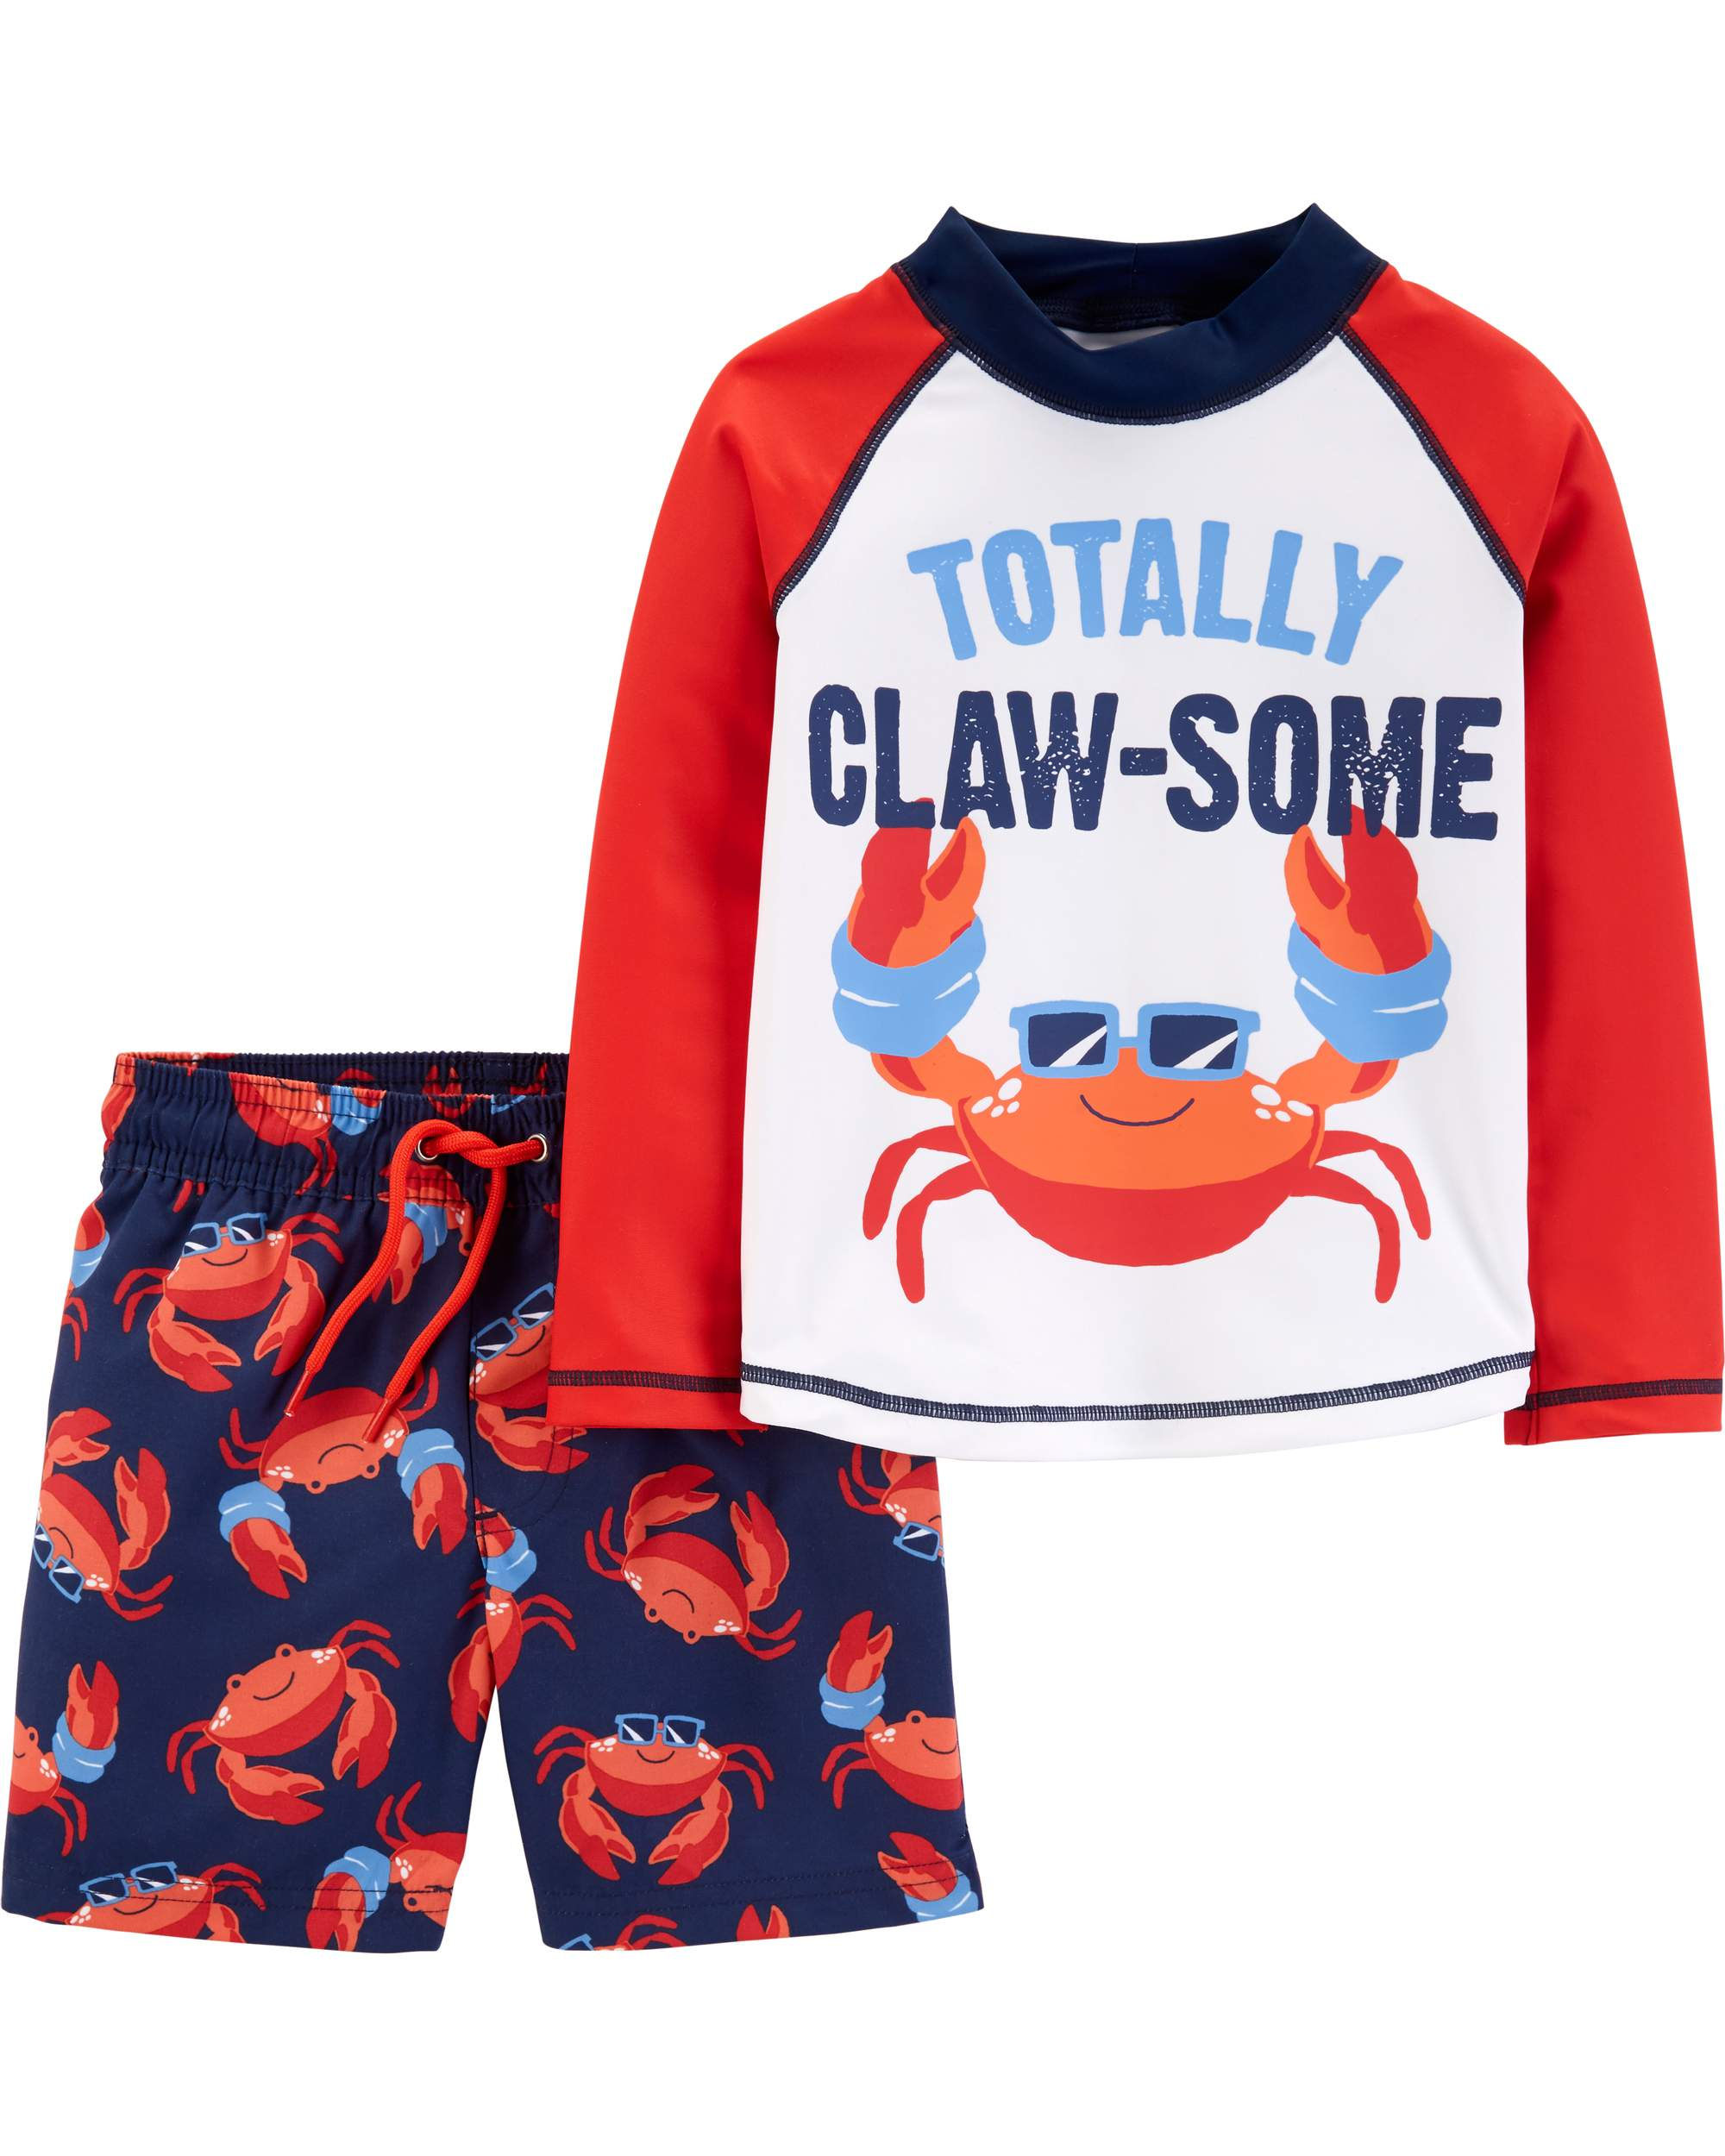 Long Sleeve Shirt and Shorts Rashguard, 2 piece swim set (Toddler Boys)